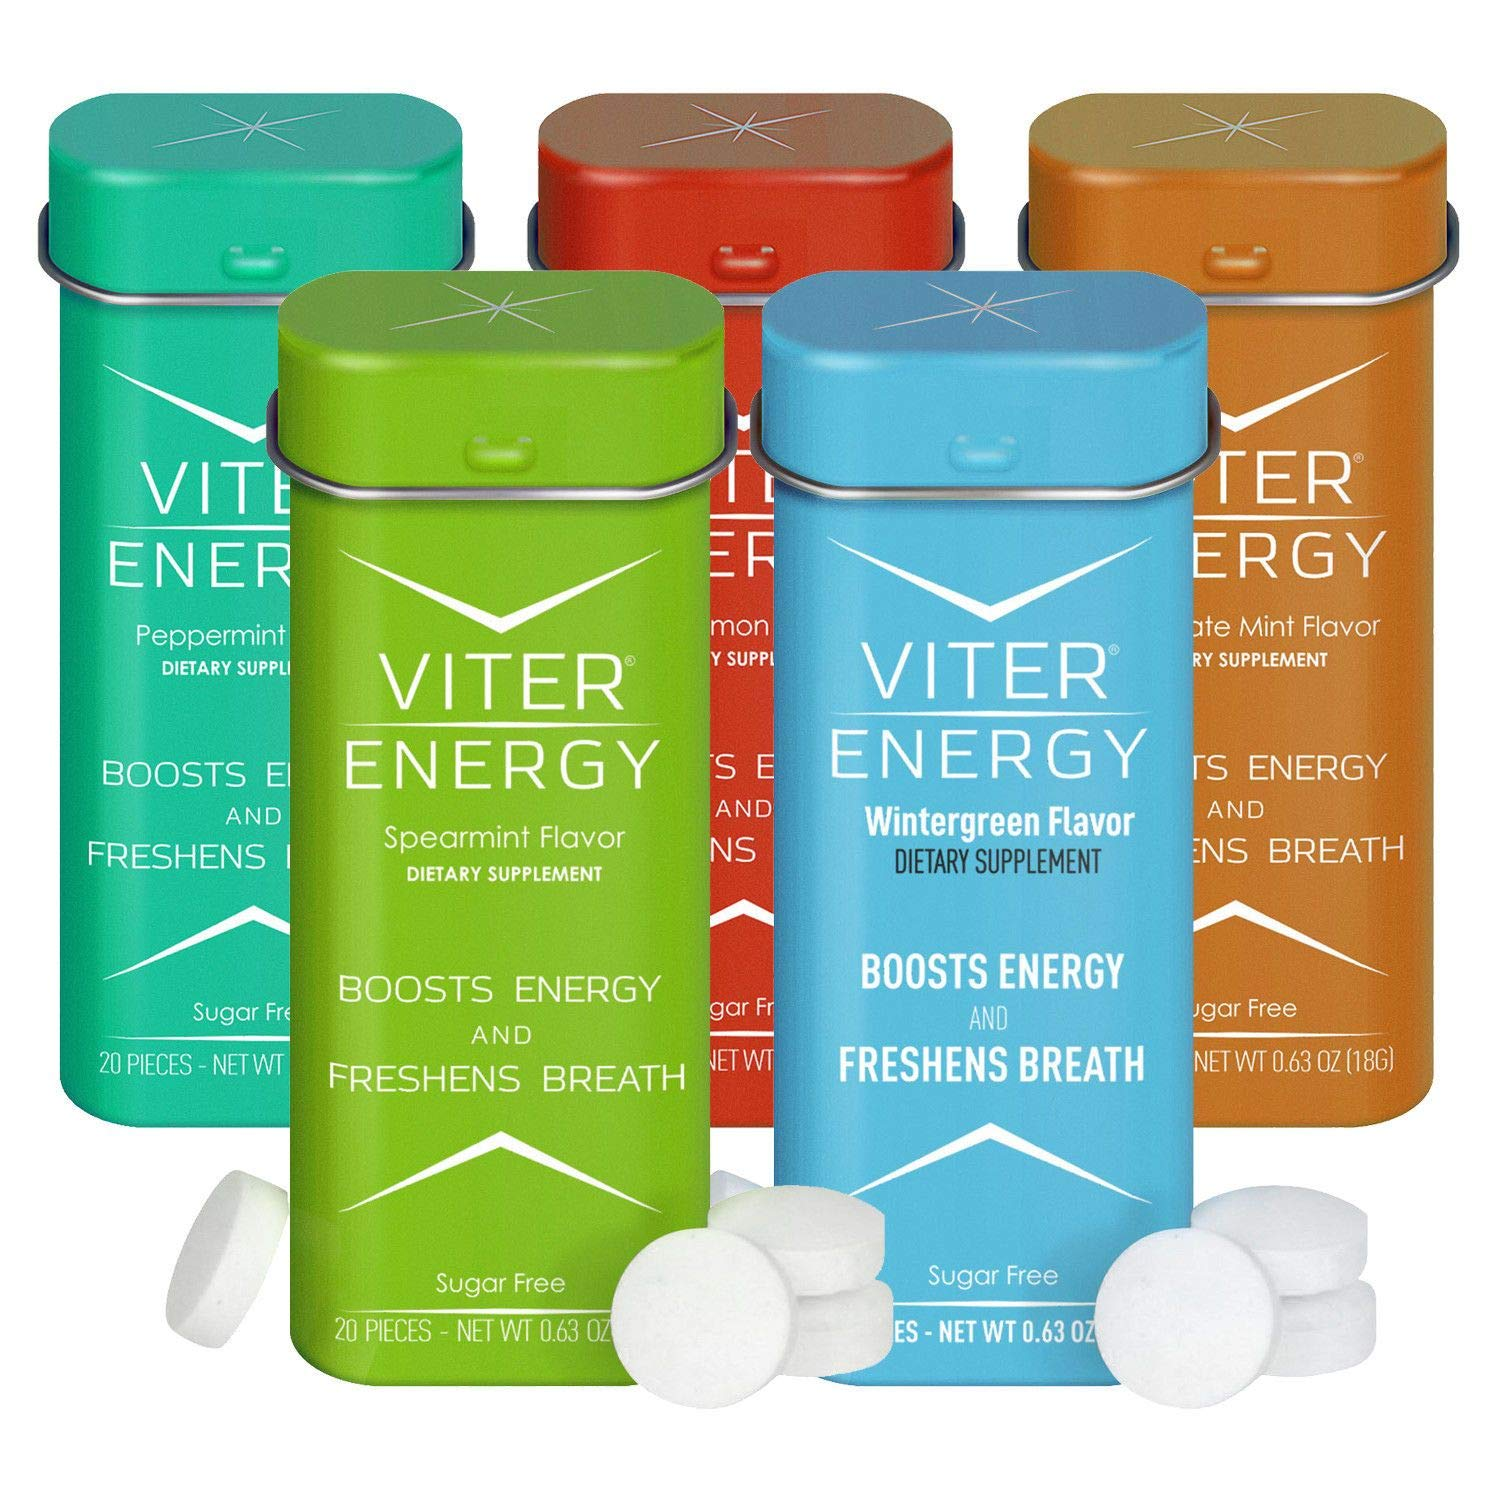 Viter Energy Caffeinated Mints 5 Flavor Variety Pack Wintergreen, Spearmint, Cinnamon, Peppermint, Chocolate Mint. Caffeine Mints for Energy, Focus